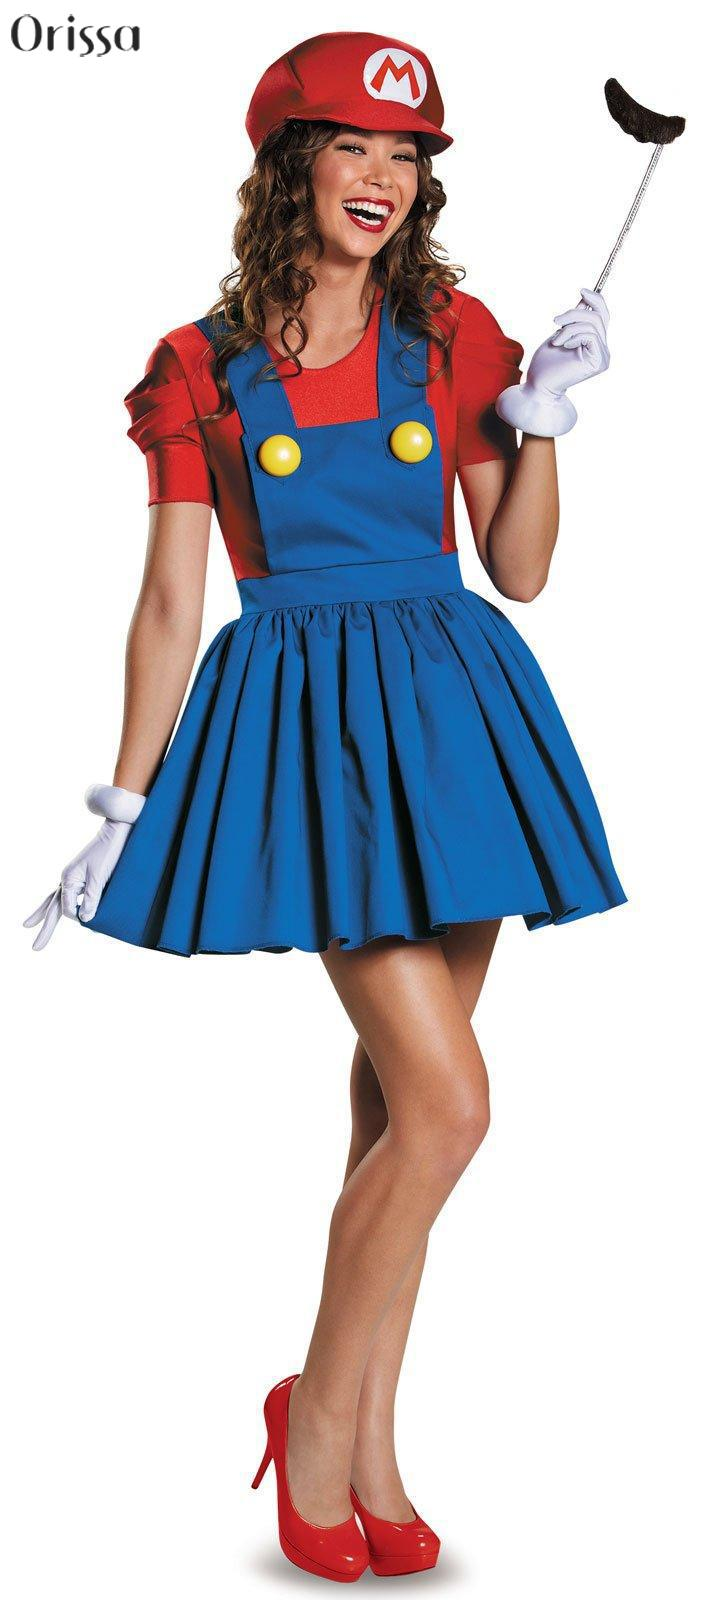 Super Mario Costume Women Luigi Costume Clothing Sexy Plumber Costume Mario Bros Fantasia Super Mario Bros Costumes For Adults-in Sexy Costumes from Novelty ...  sc 1 st  AliExpress.com & Super Mario Costume Women Luigi Costume Clothing Sexy Plumber ...